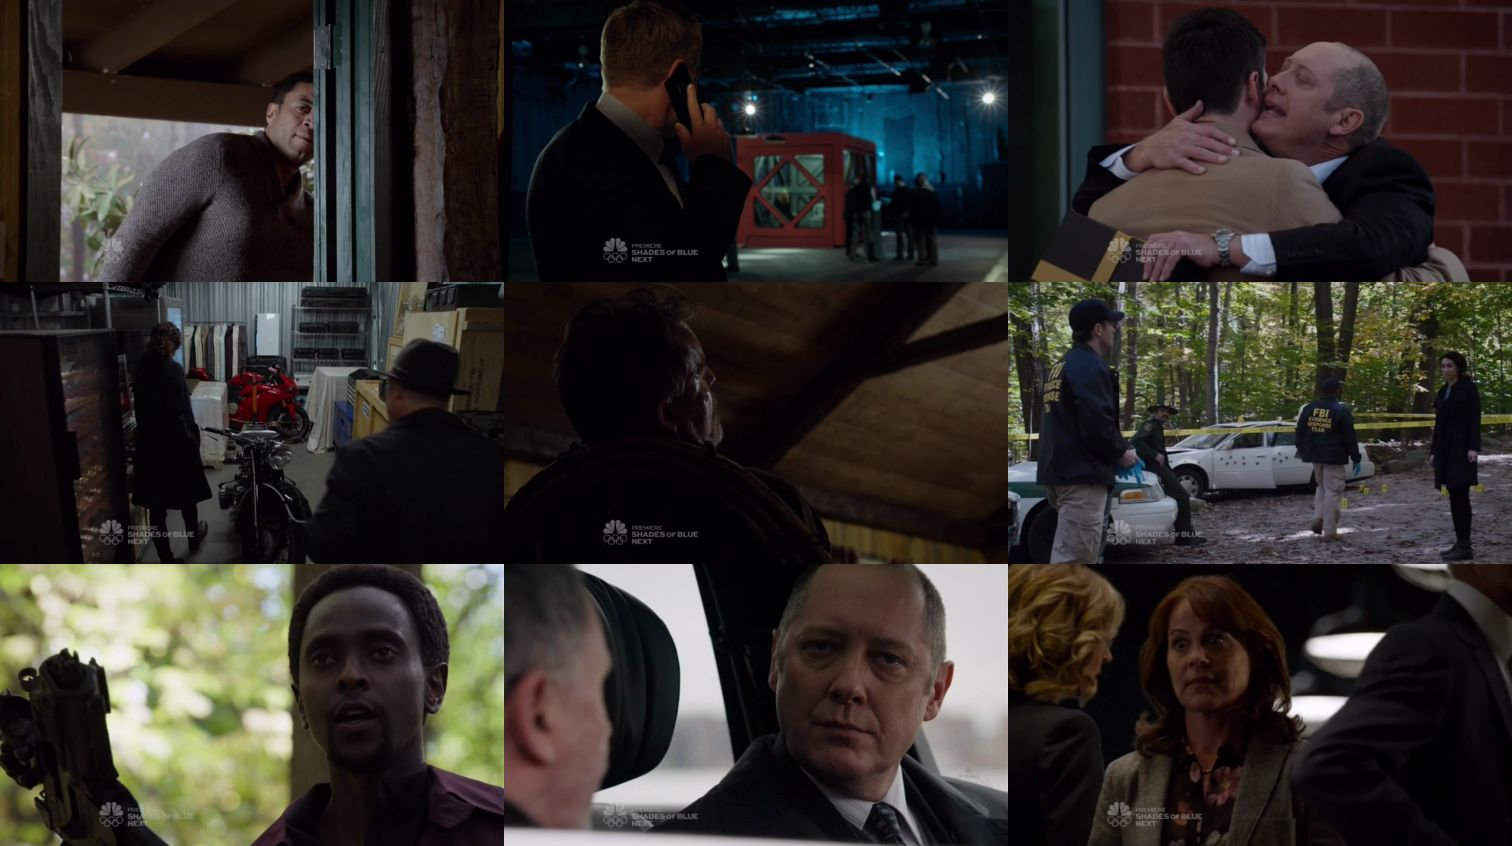 The Blacklist S03E09 HDTV x264-KILLERS